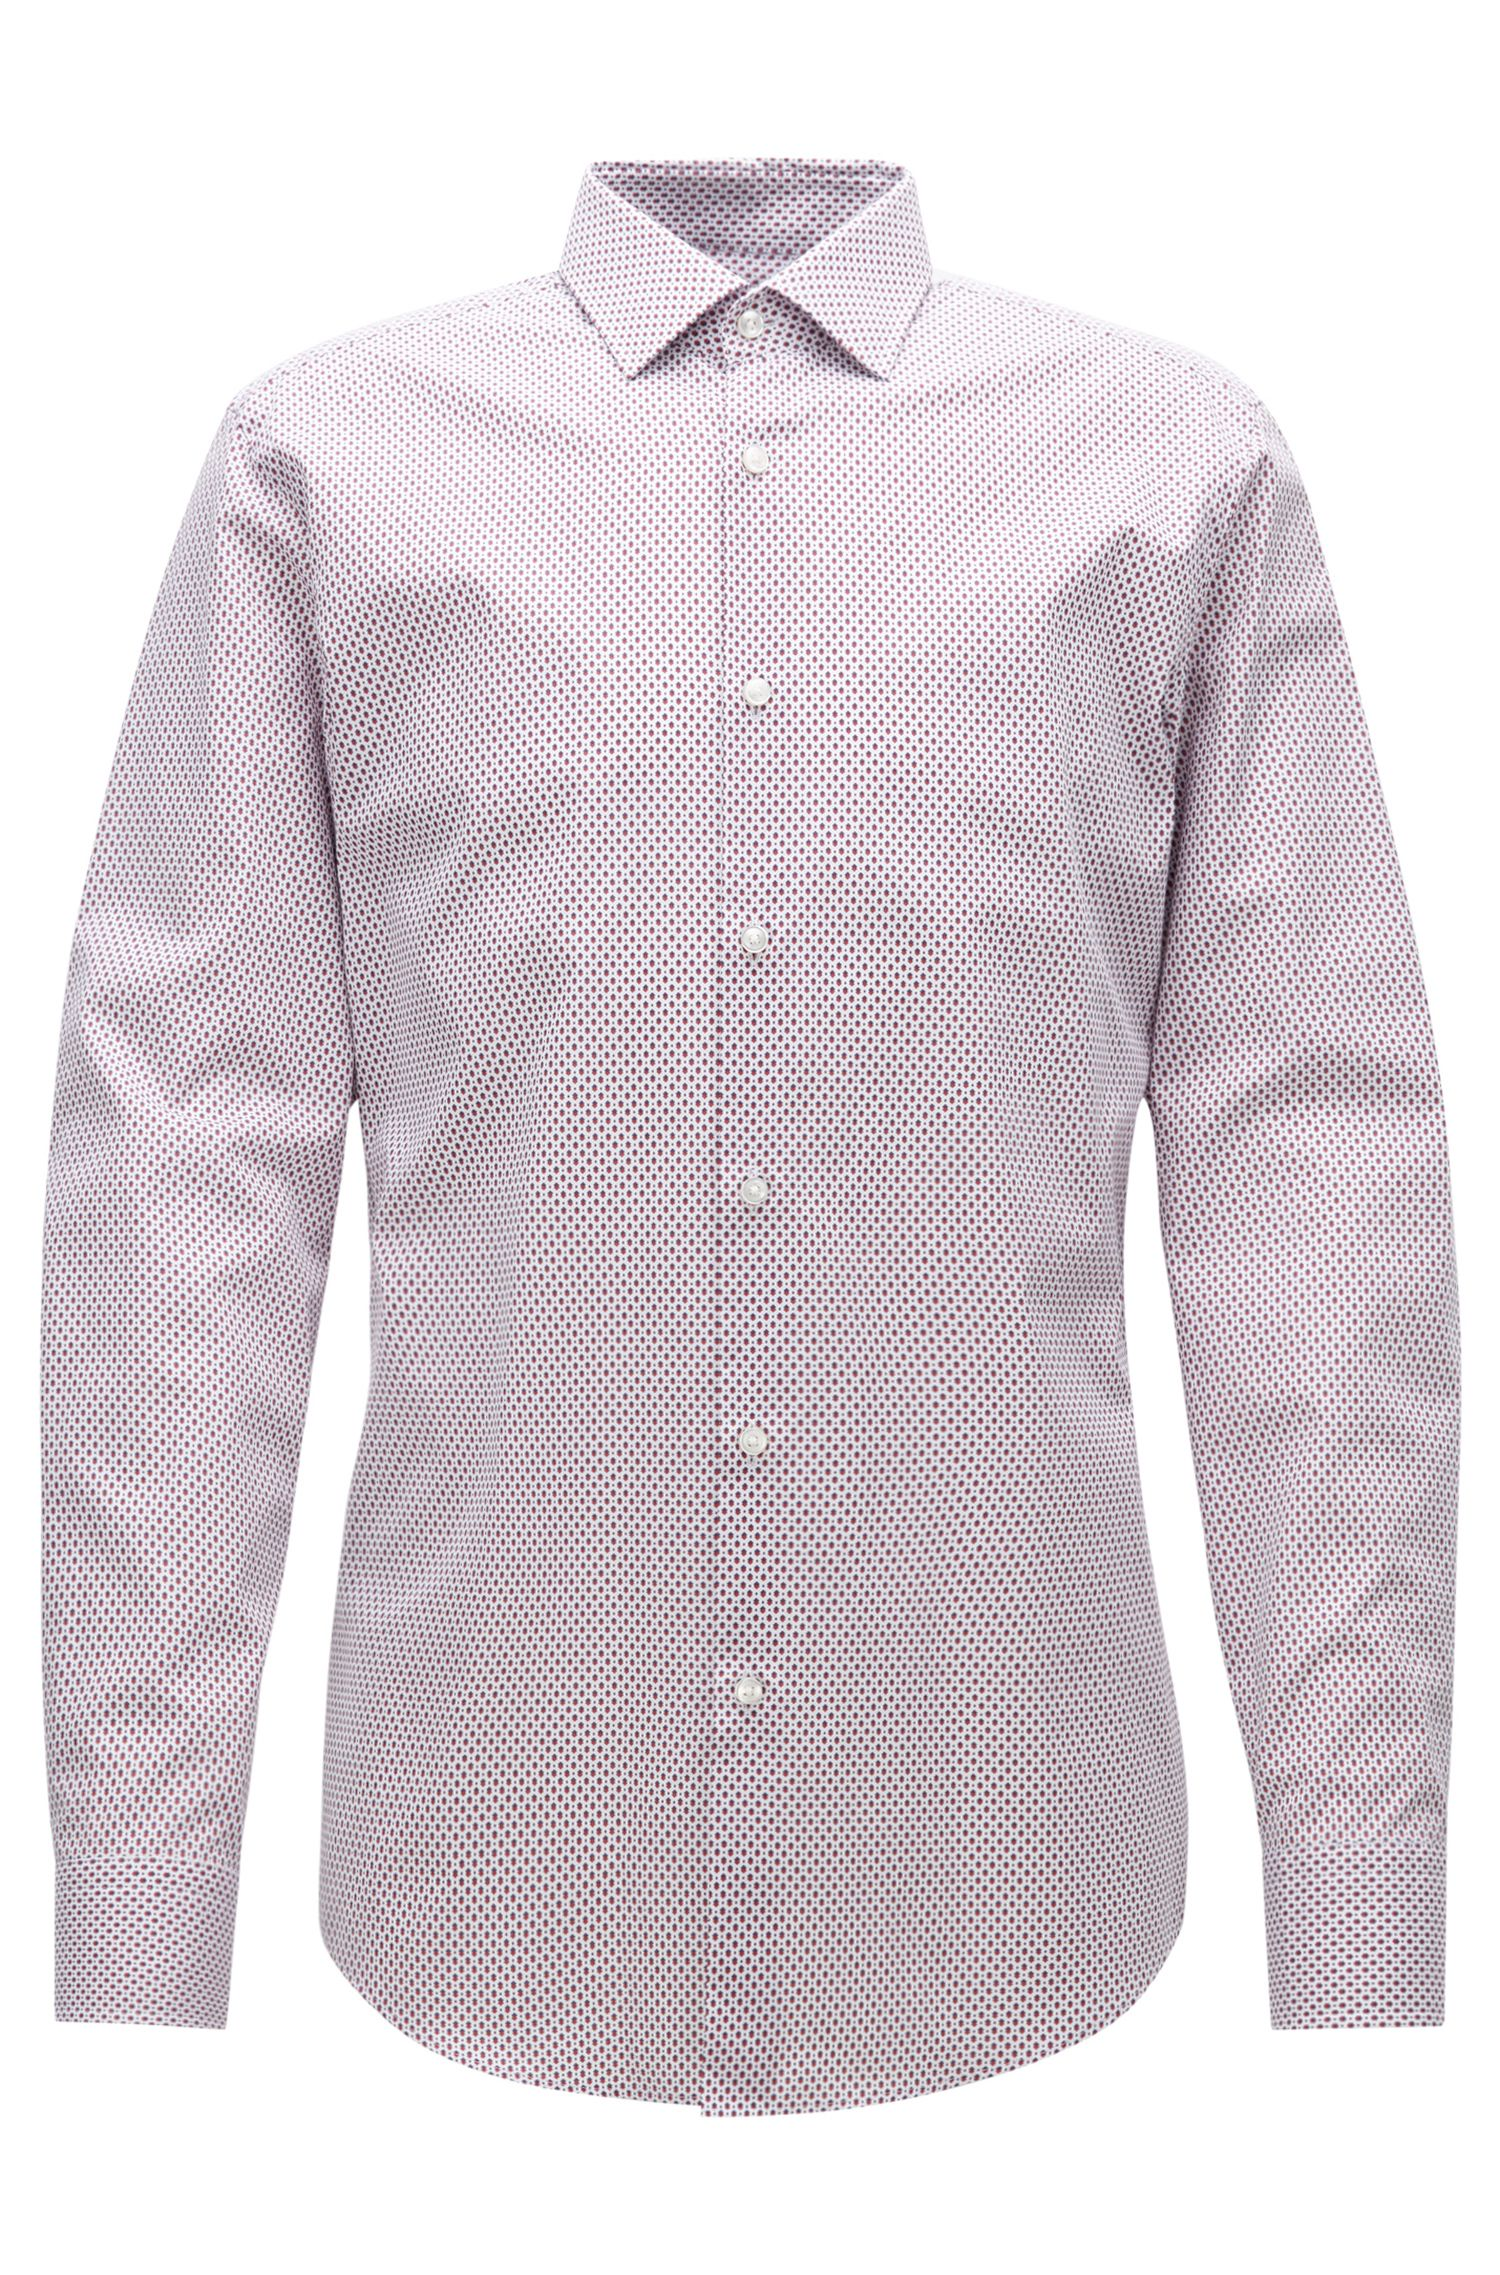 Camicia slim fit in popeline bicolore